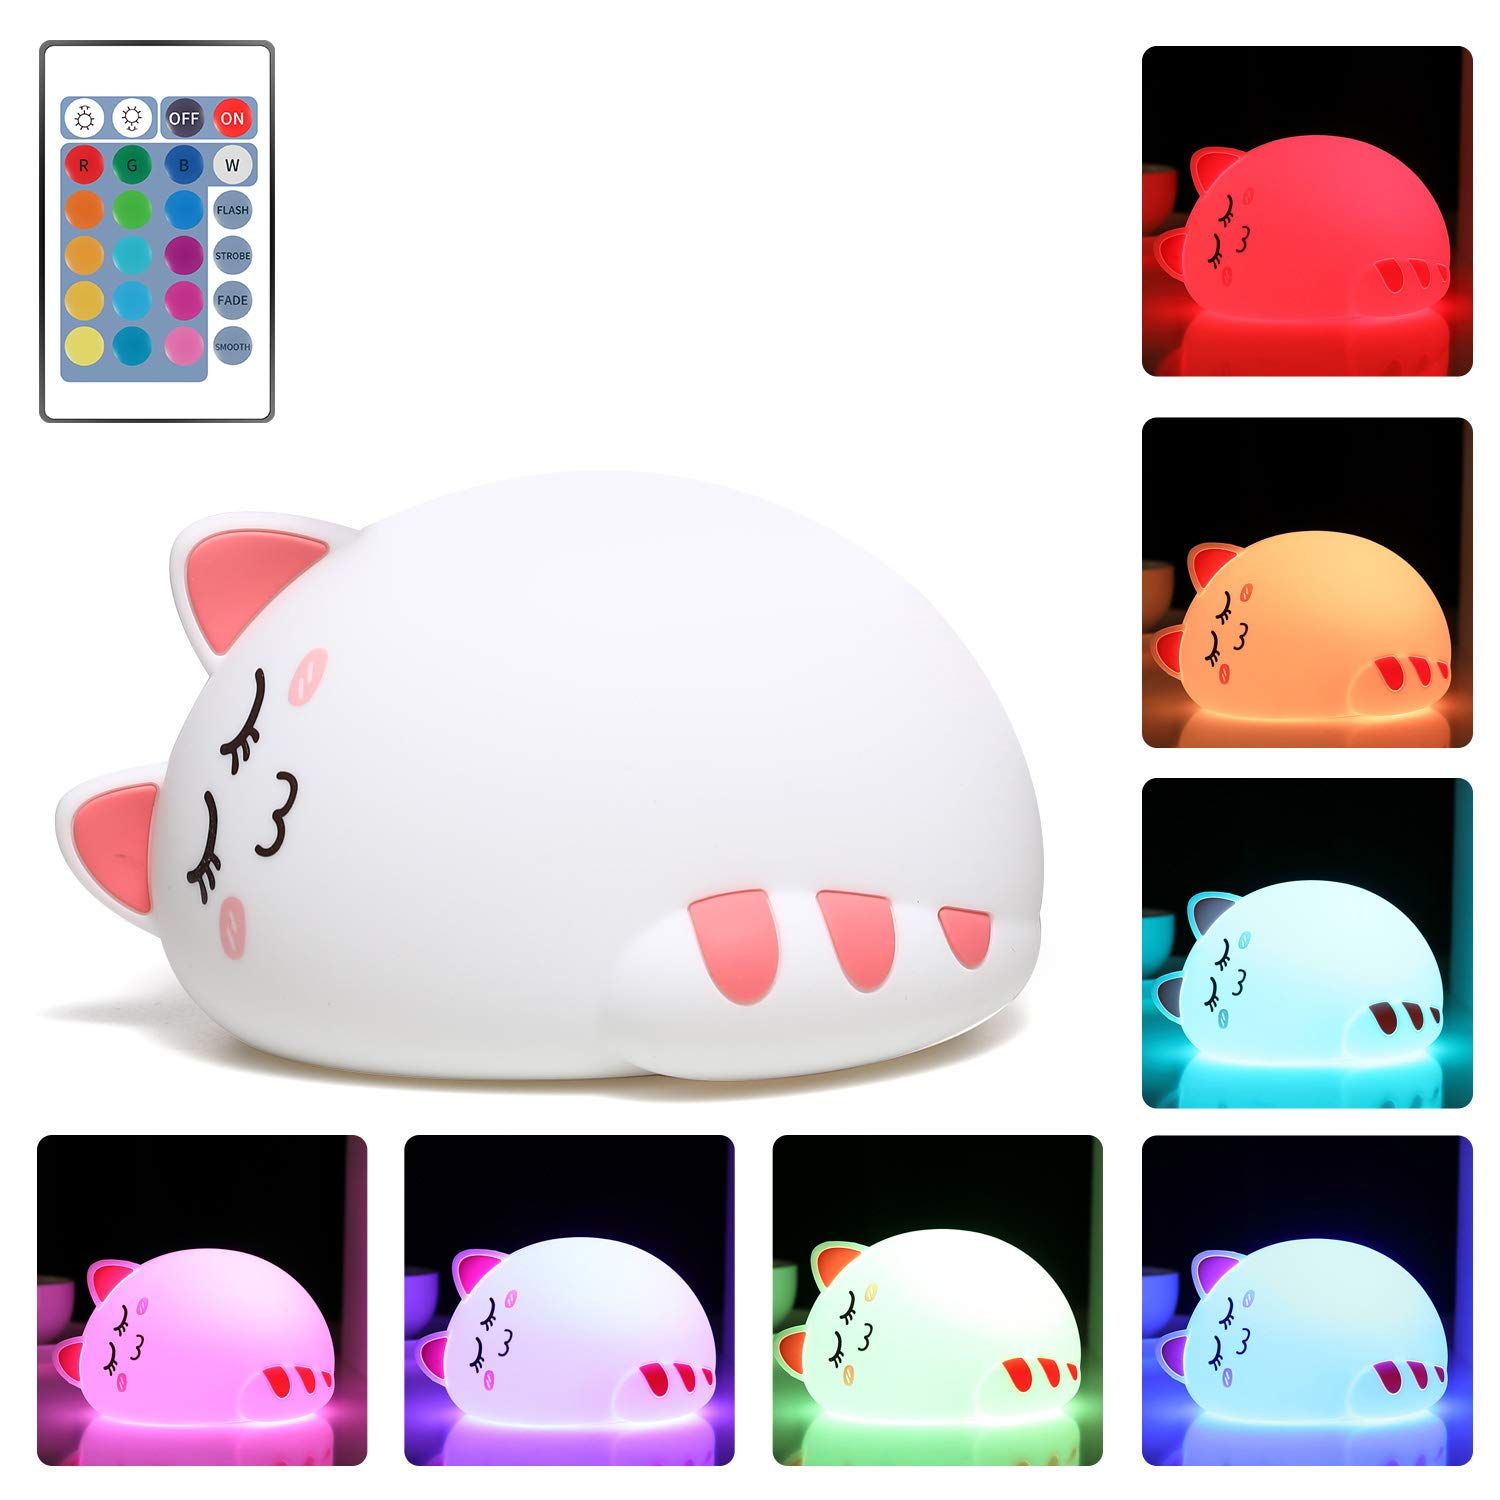 One Fire Baby Nursery Night Light for Kids, Cute Cat Soft Silicone Animal Night Lamp, Remote Control Color Changing Bedroom Breastfeeding Nightlight for Newborn Toddler Children Girls (Sleep Plus)